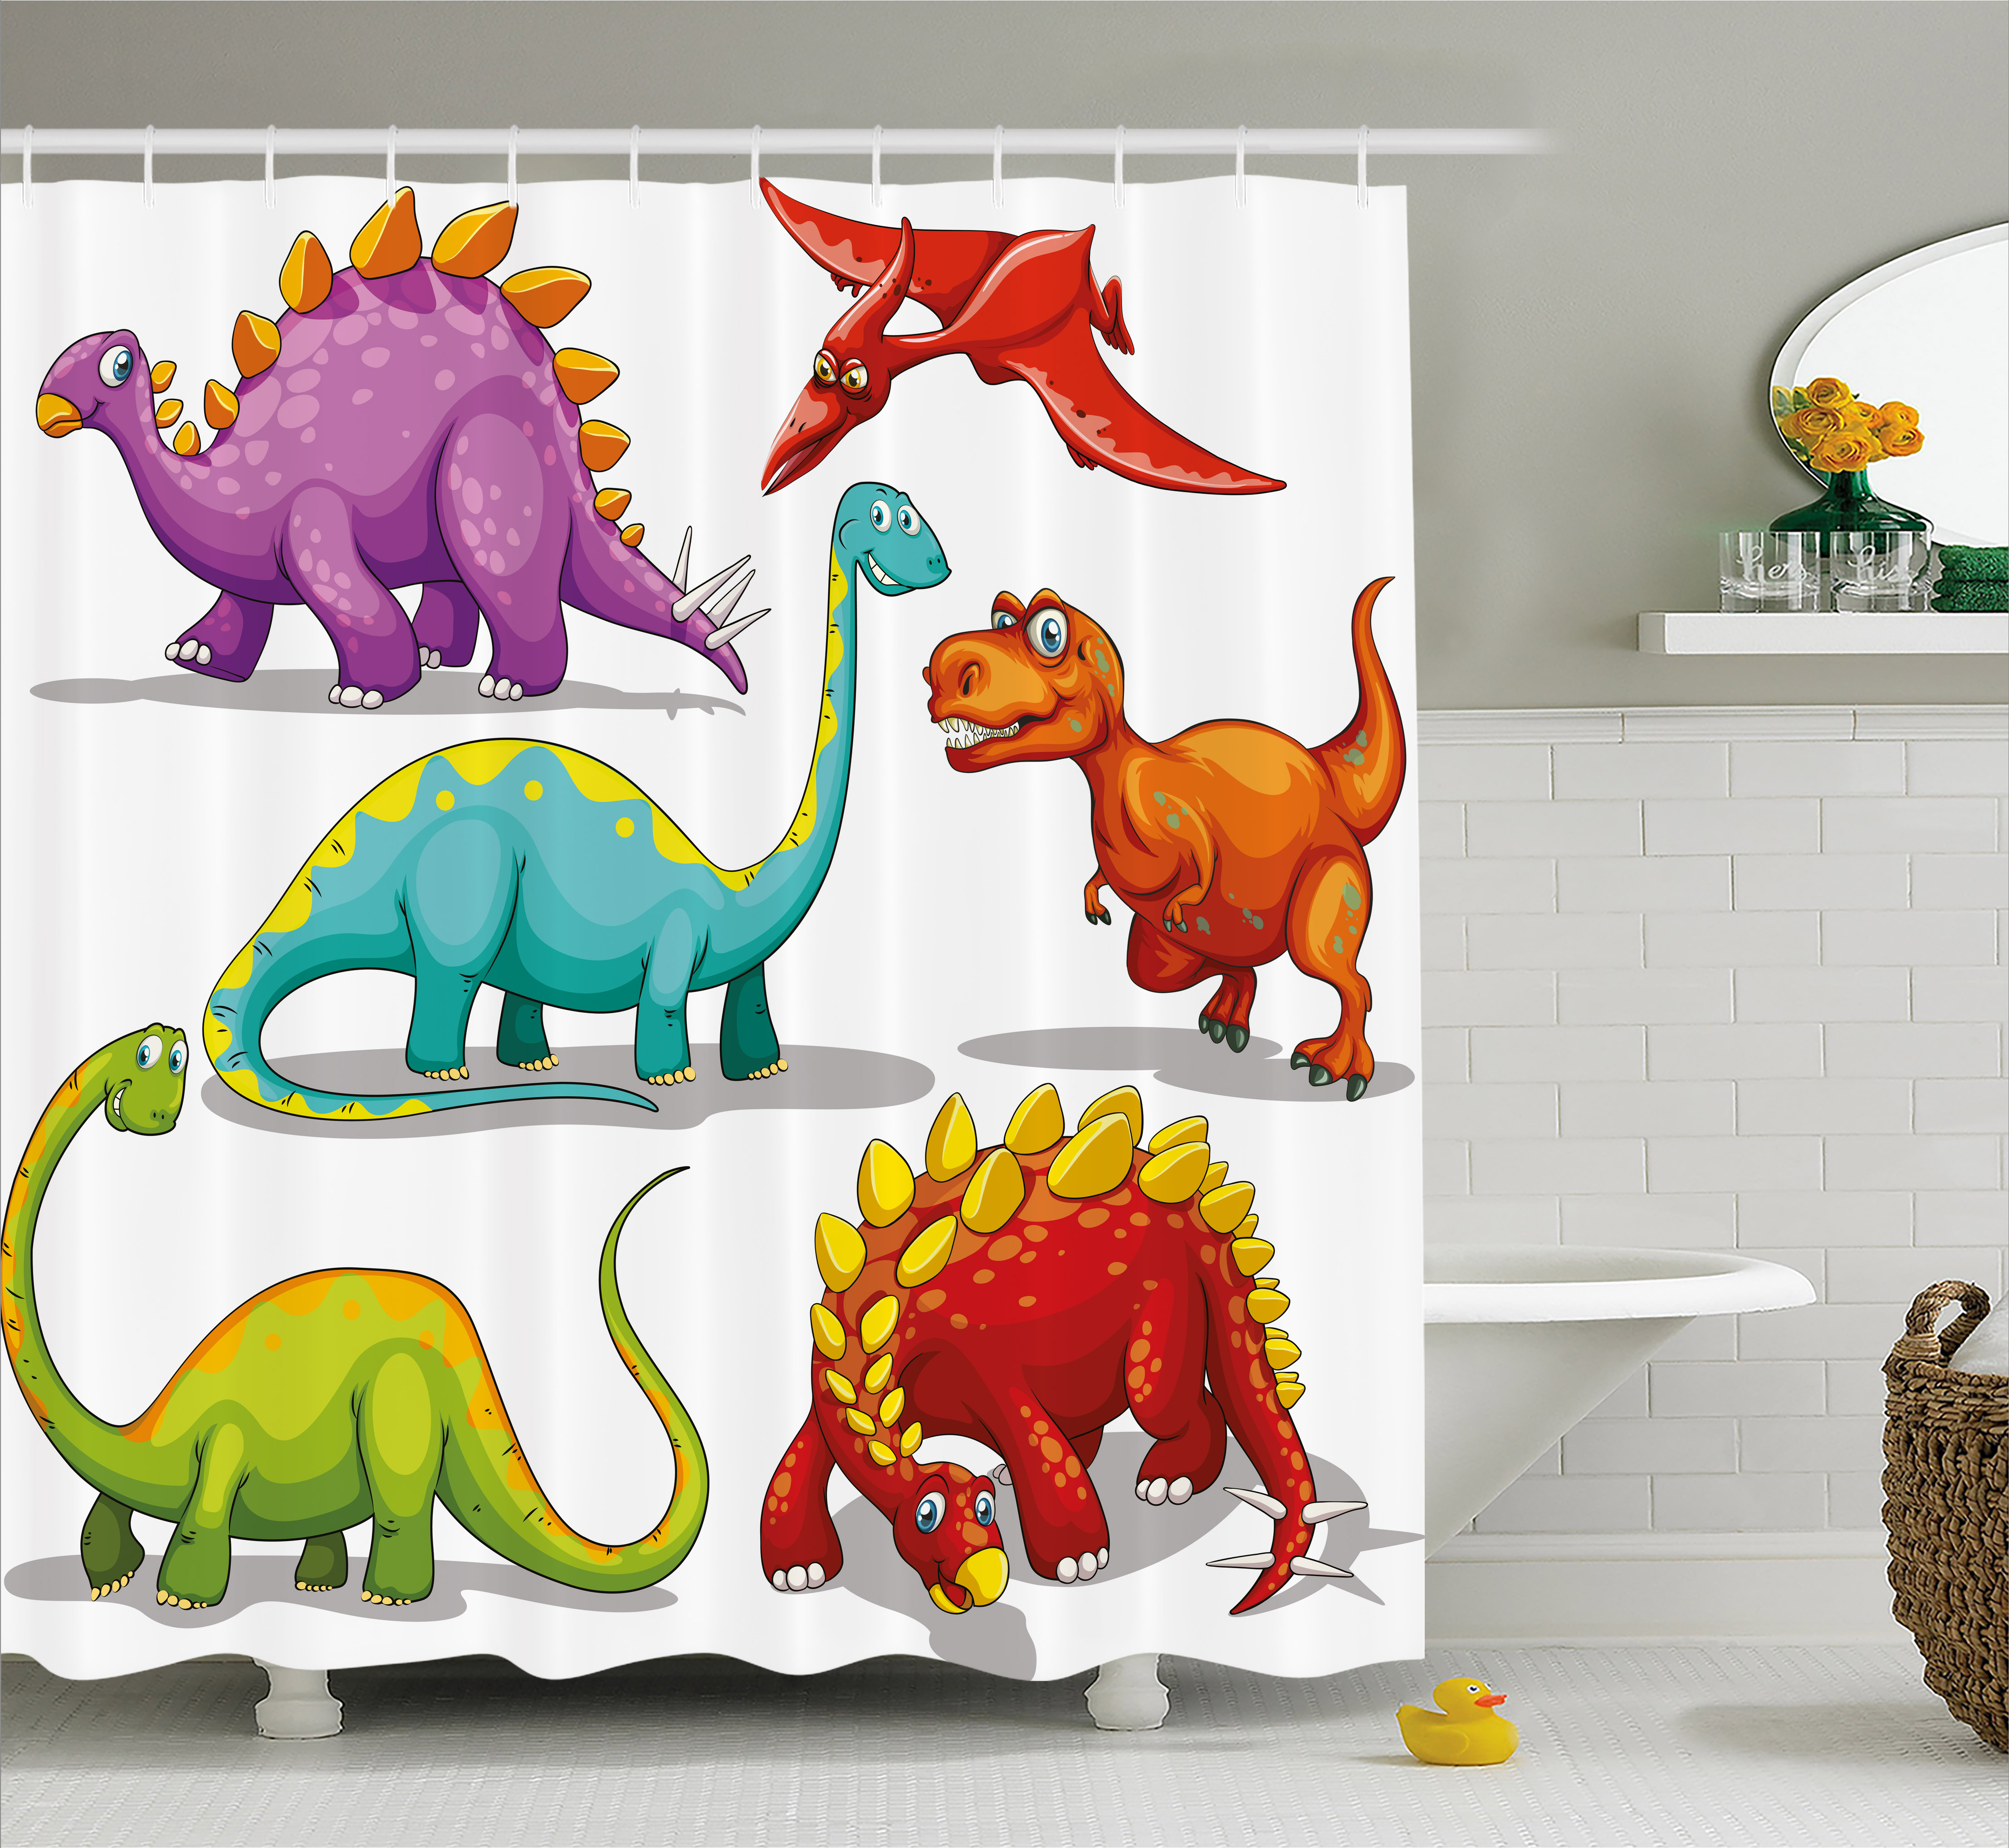 Dinosaur Shower Curtain Colorful Funny Different Dino